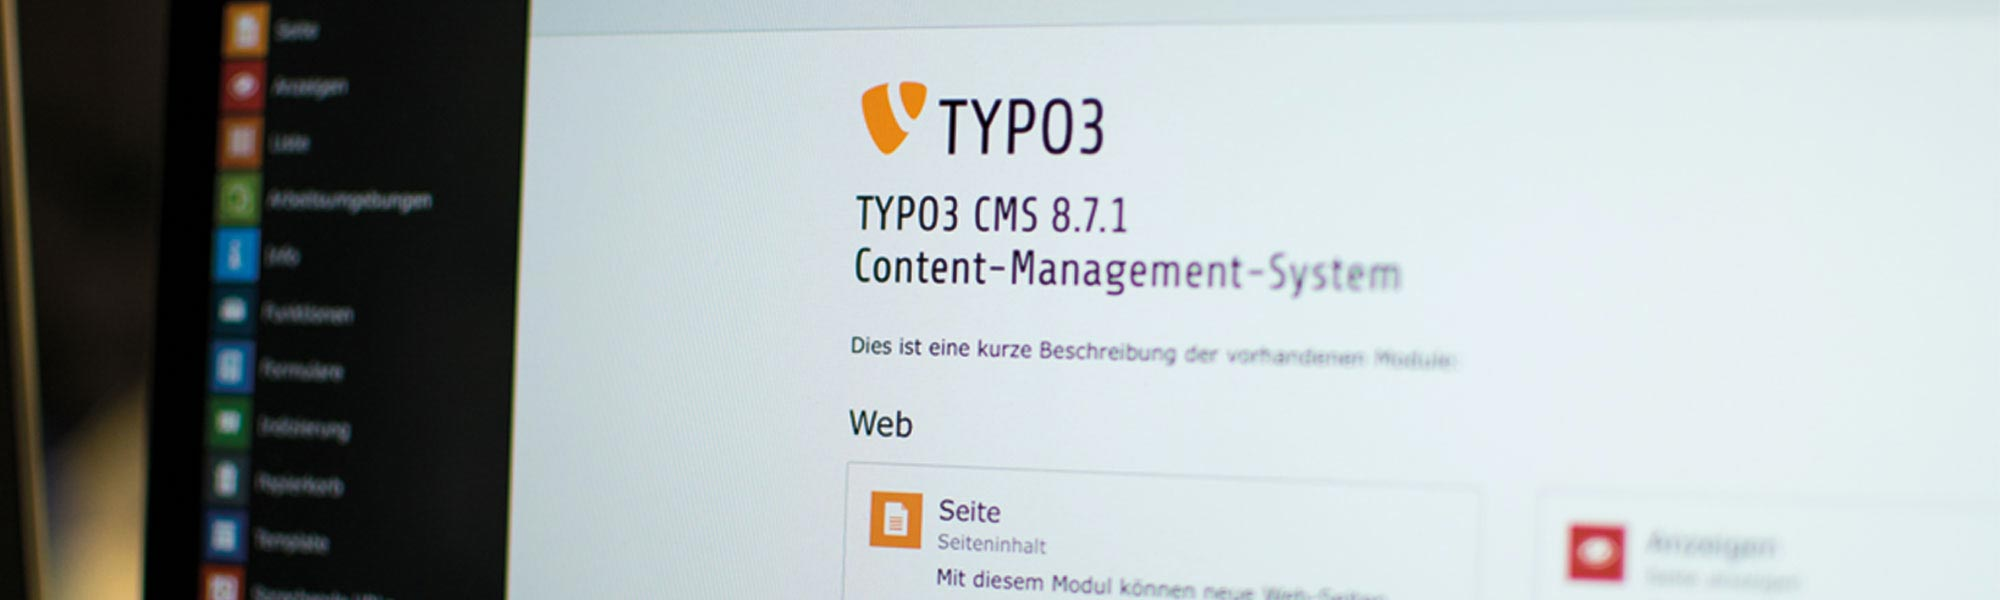 TYPO3 Backend